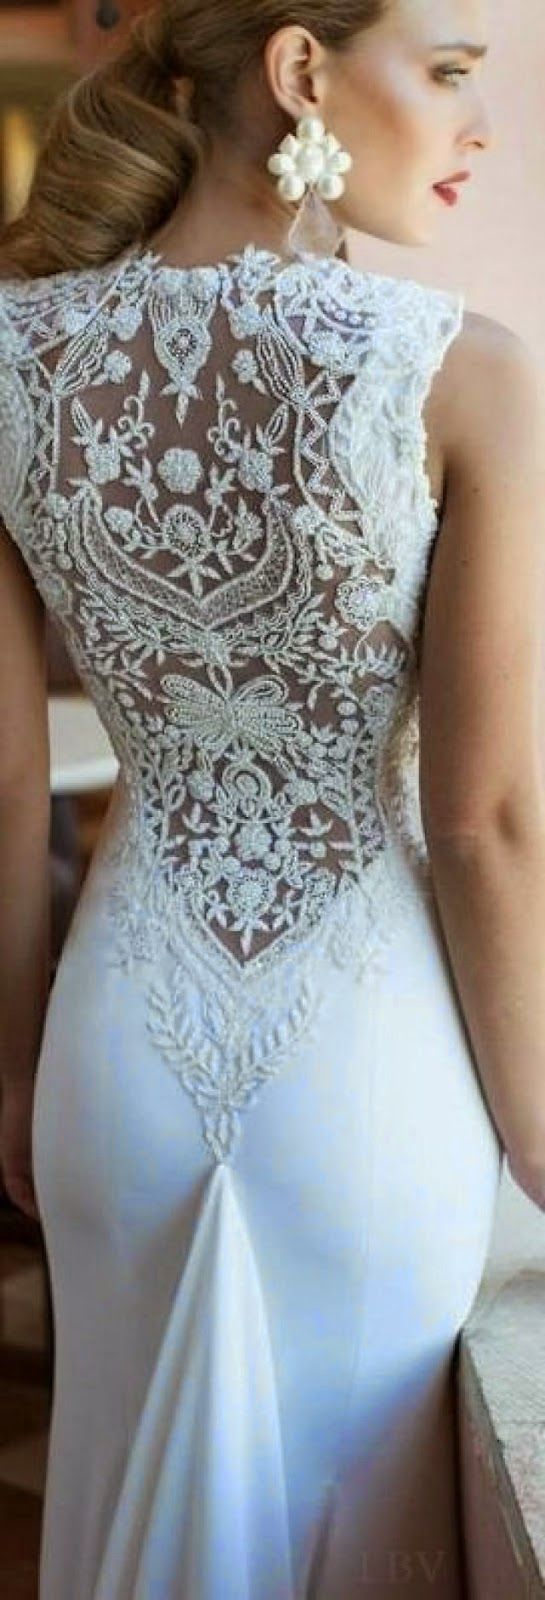 82 best Hair and Fashion images on Pinterest | Beautiful women ...